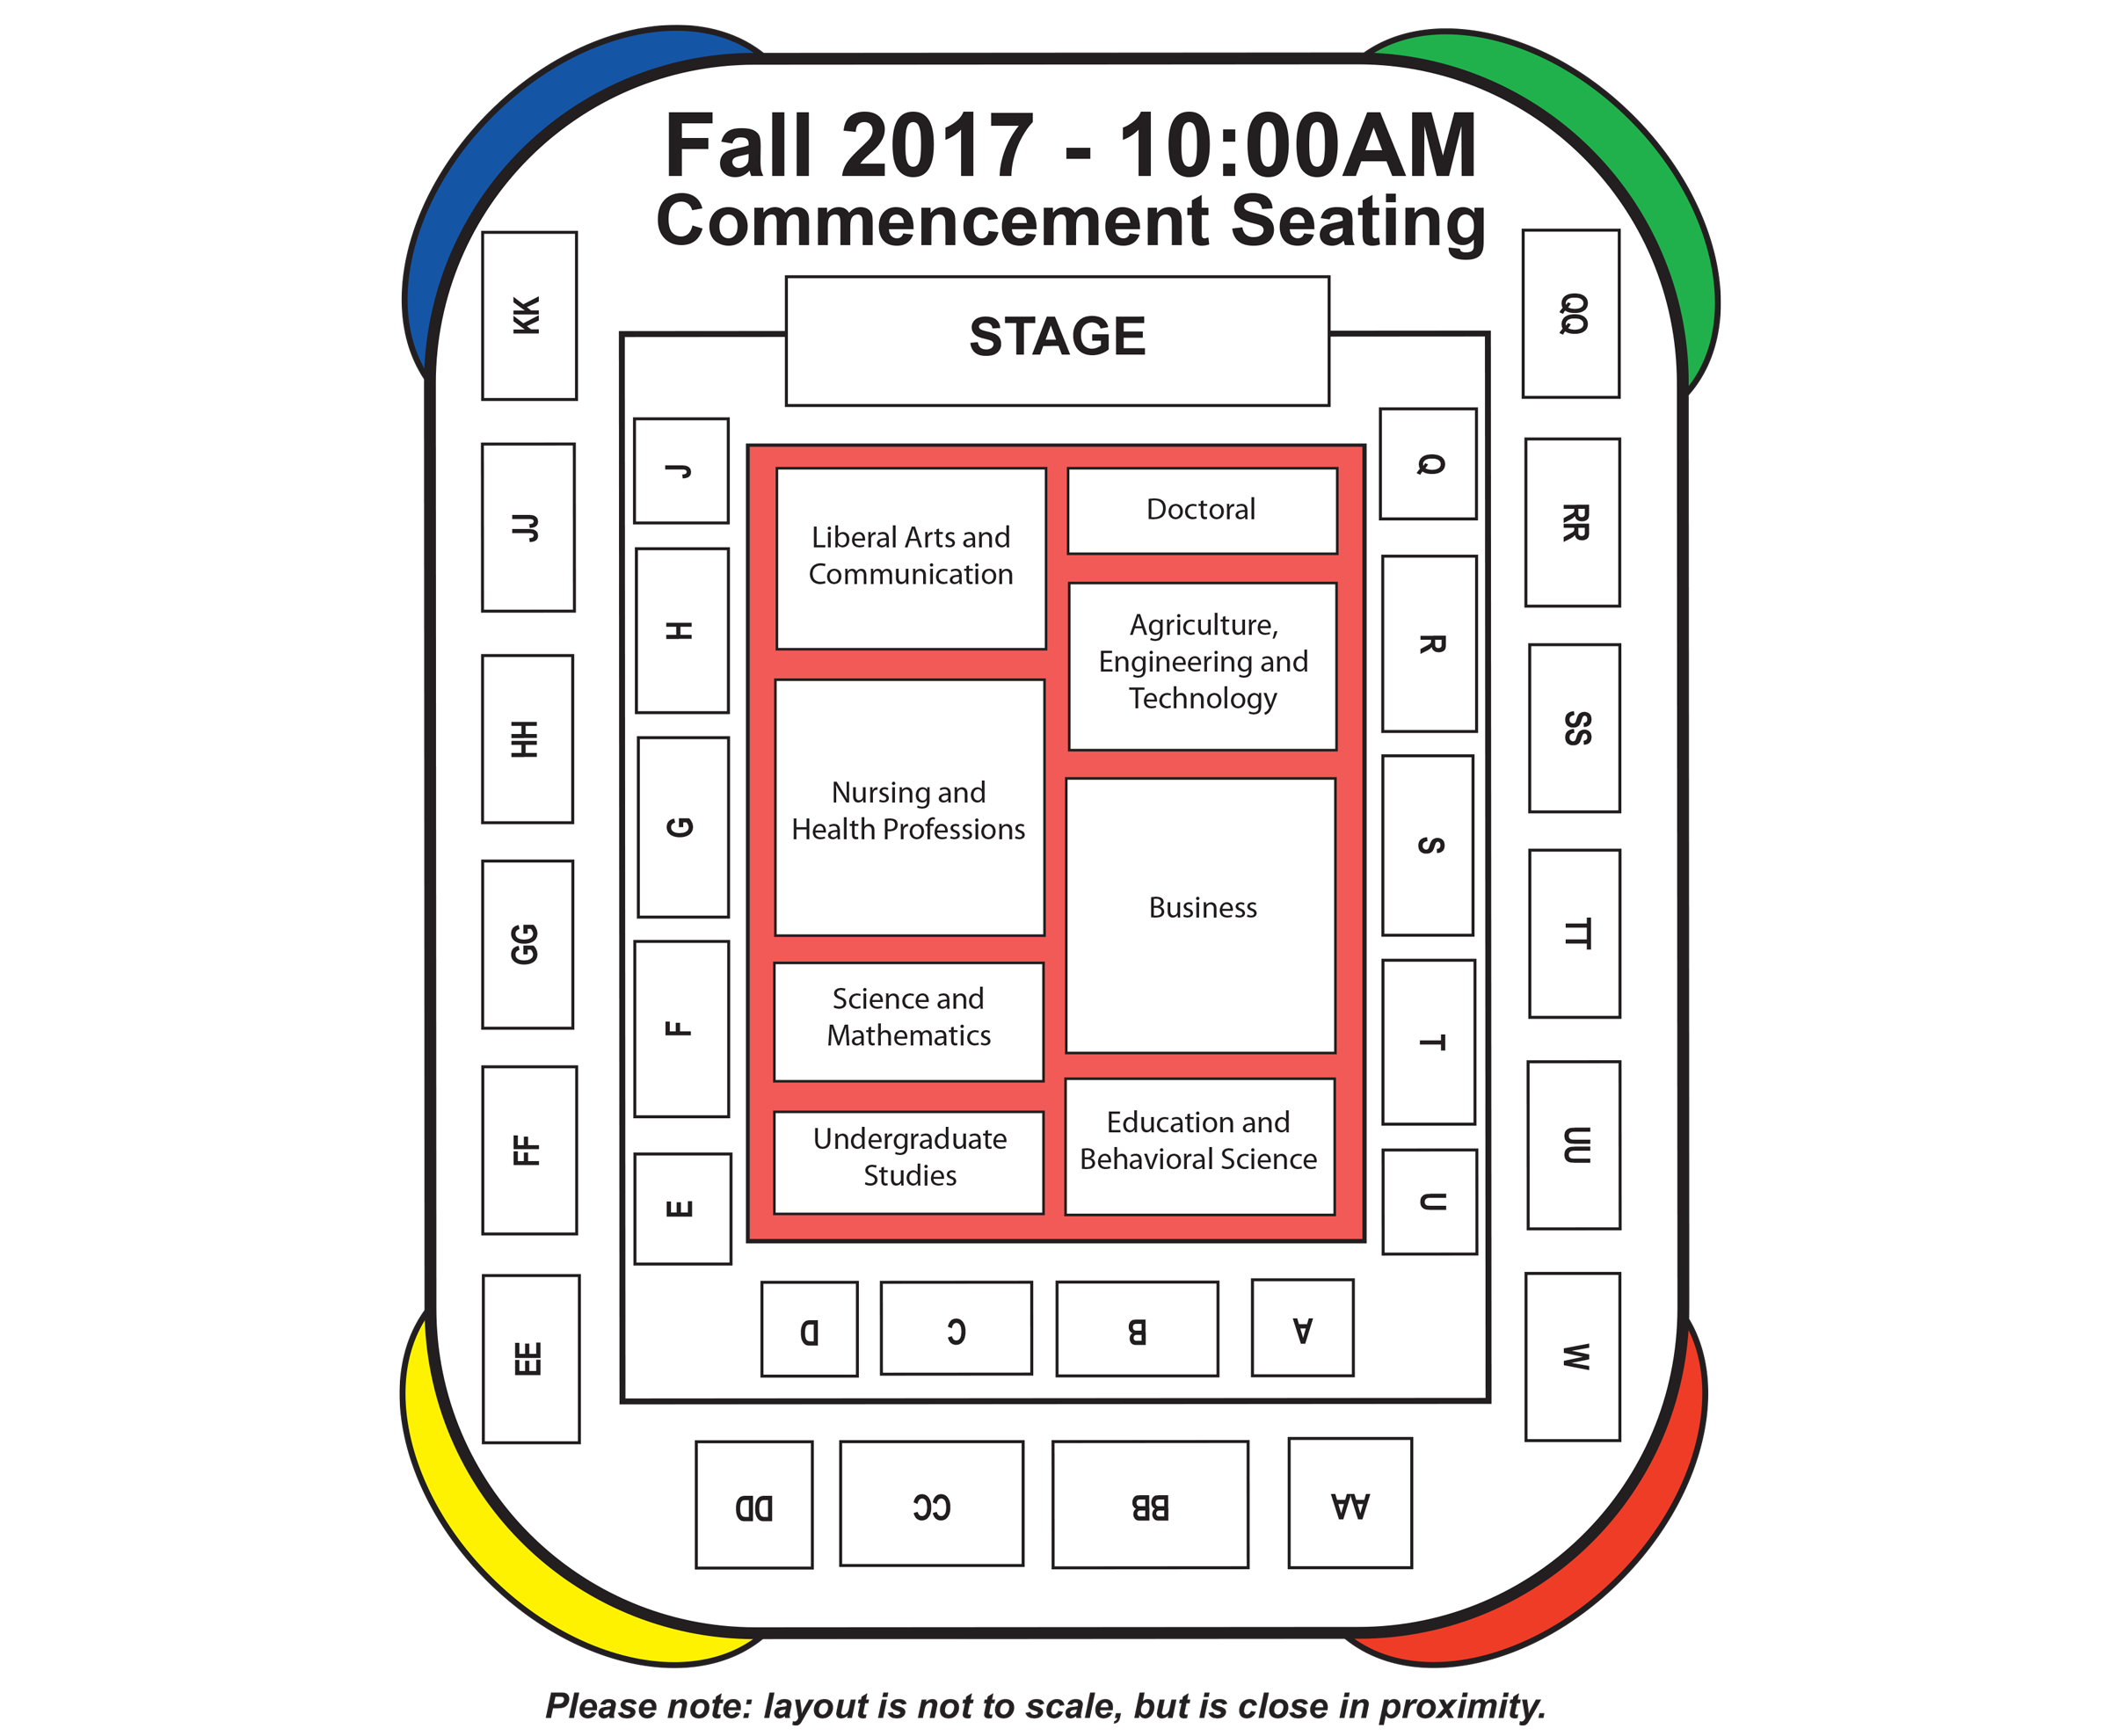 2017 Fall Commencement Seating Chart